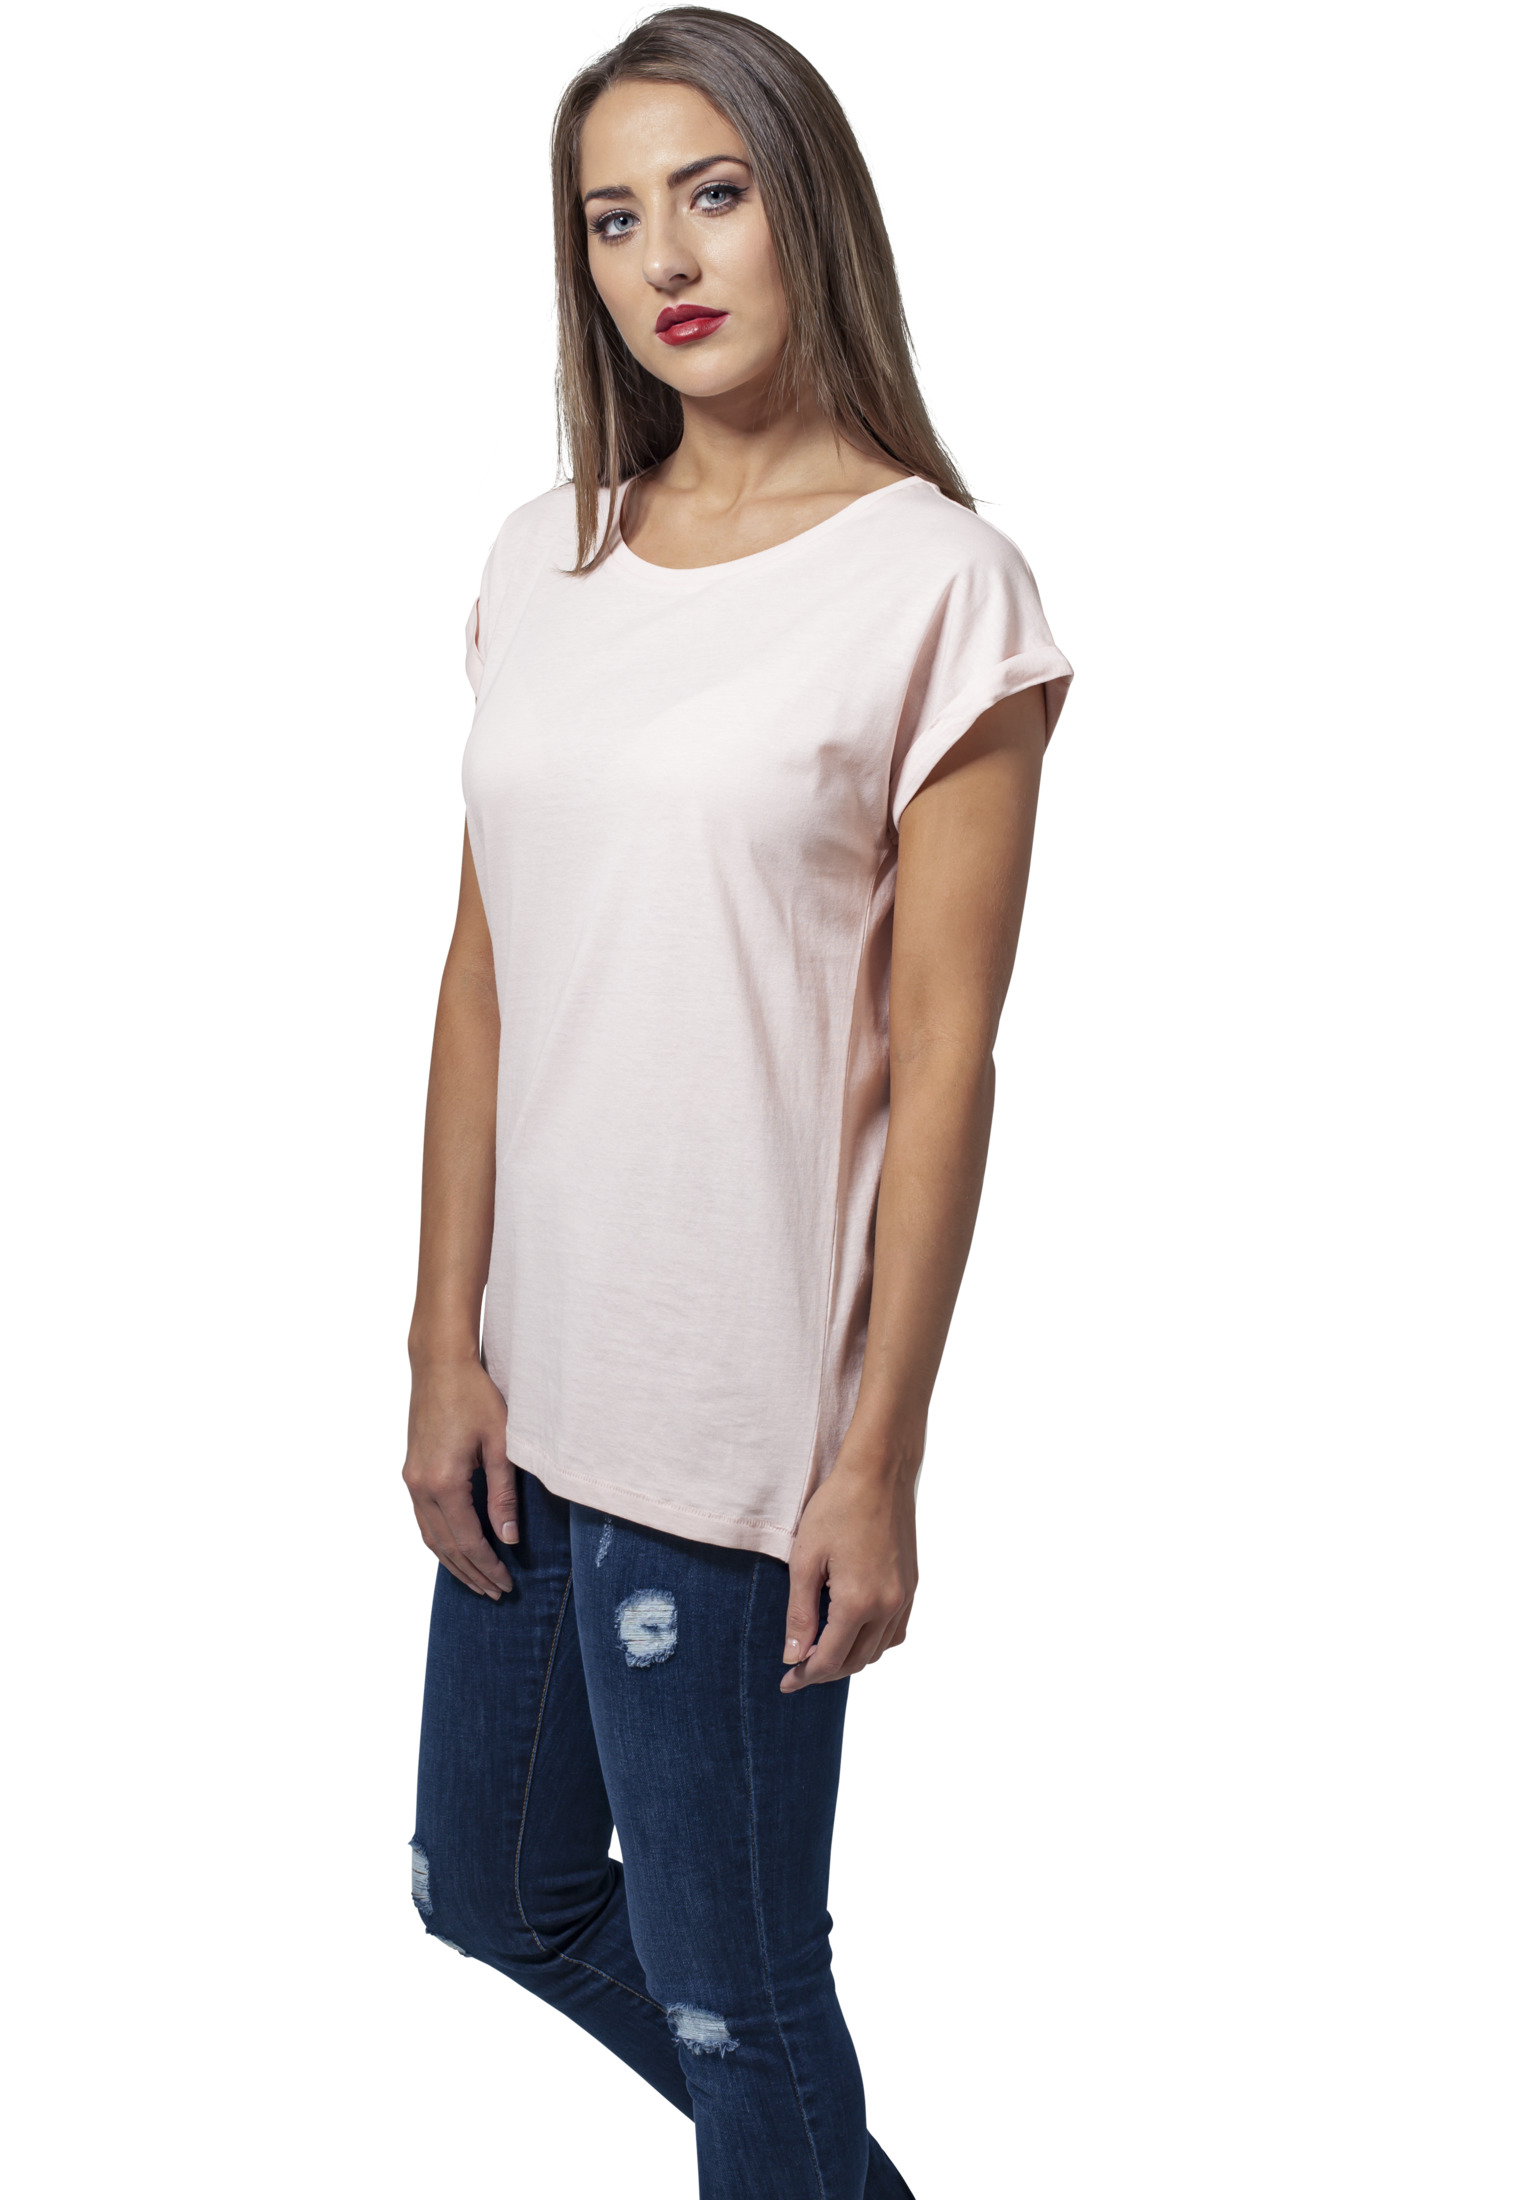 Urban Classics Ladies Extended Shoulder Tee Damen Top T-Shirt Rundhals Fashion